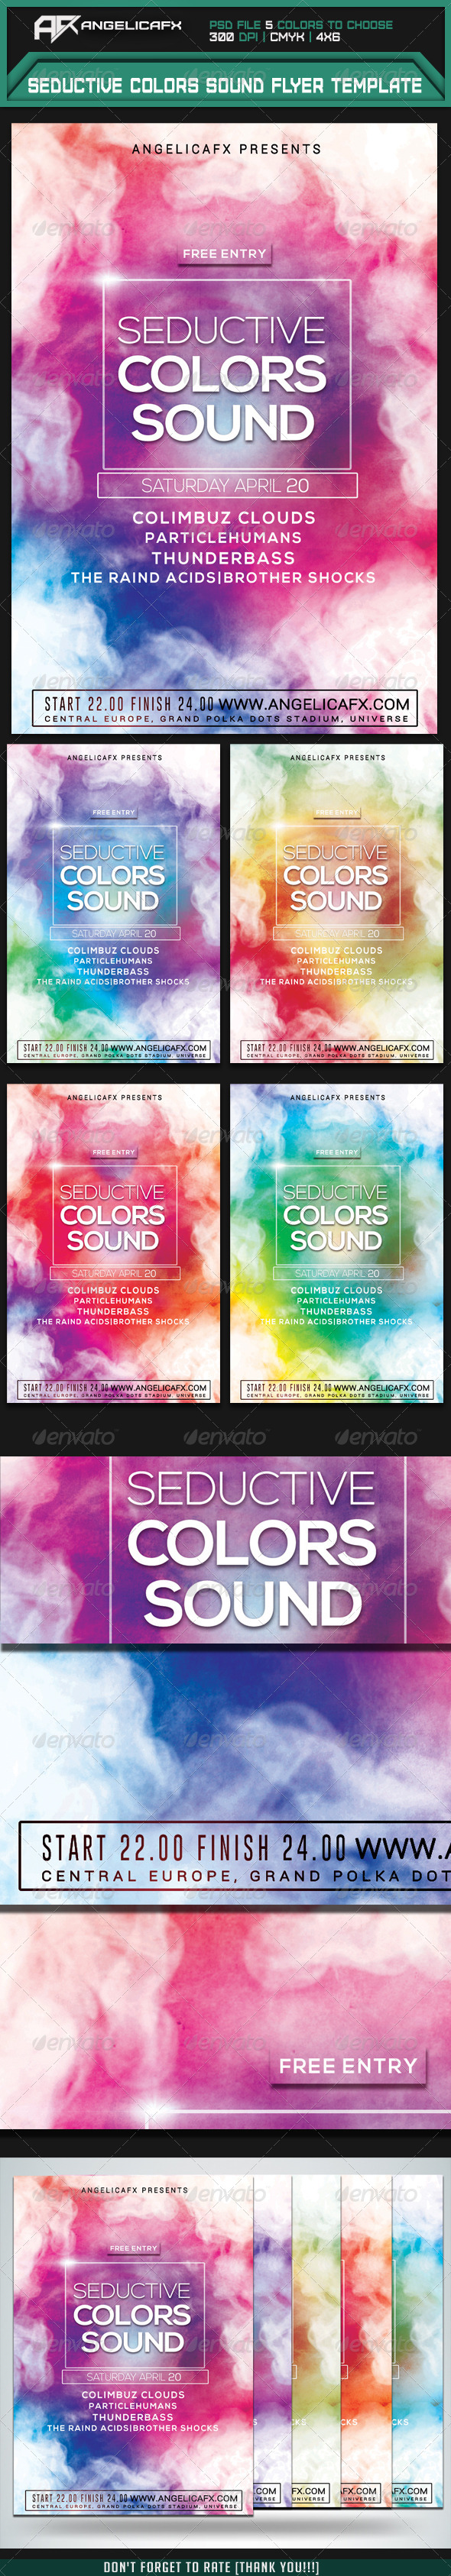 GraphicRiver Seductive Colors Sound Flyer Template 7500478